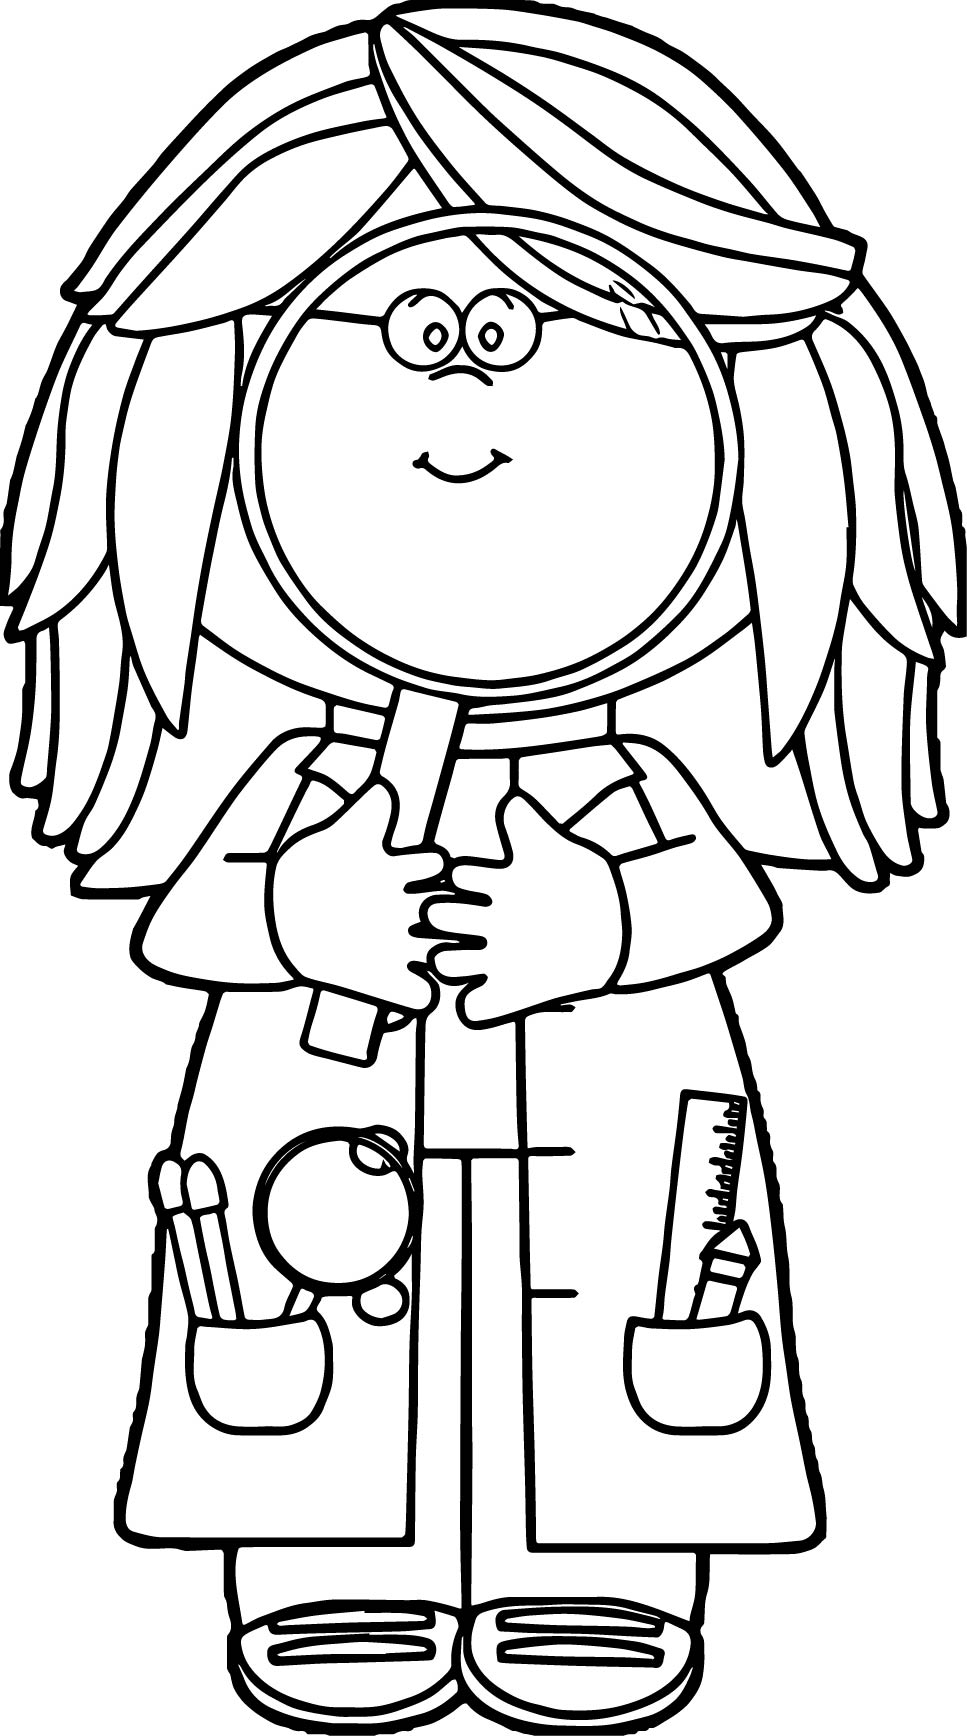 scientist coloring page - scientist coloring pages